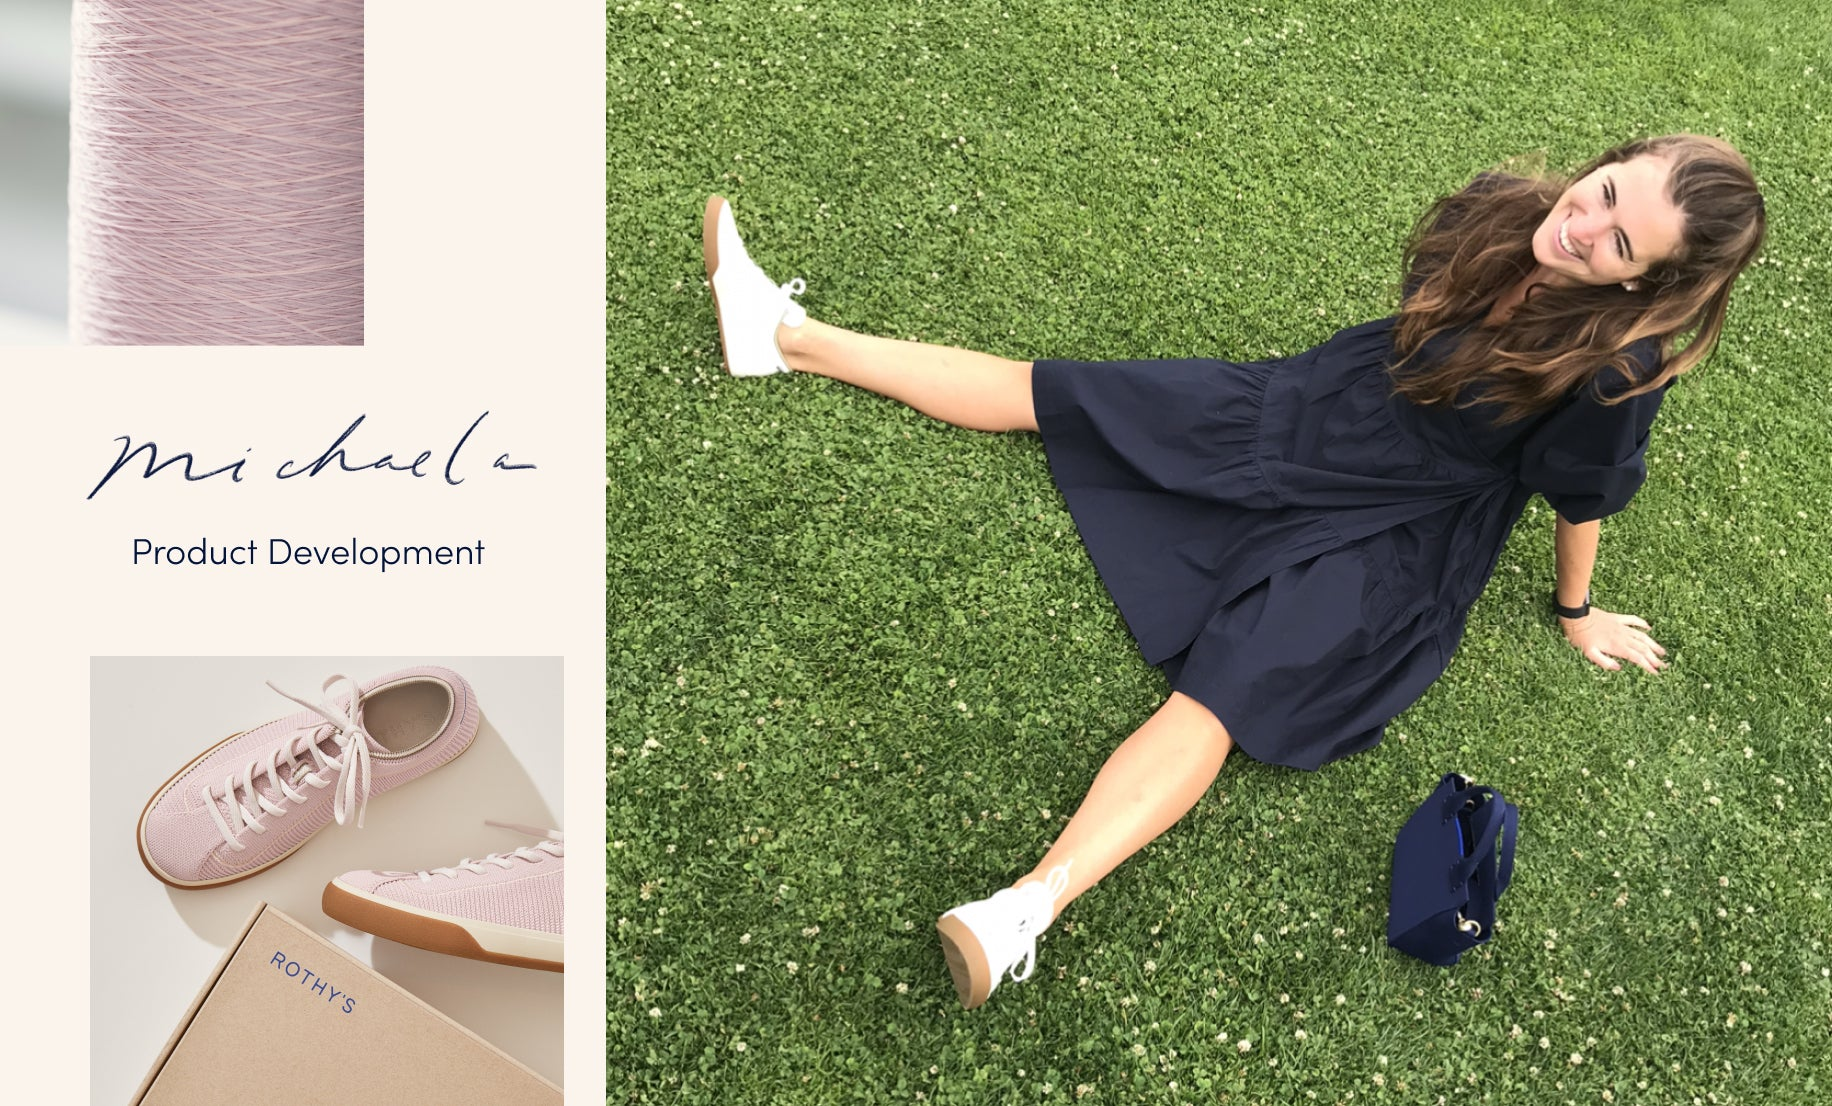 "Image with the text ""Michaela—product development"", with a collage of images showing her sitting in the grass wearing The Lace Up in Vanilla, a spool of lilac thread, and The Lace Up in Lilac shown with a Rothy's shoebox."